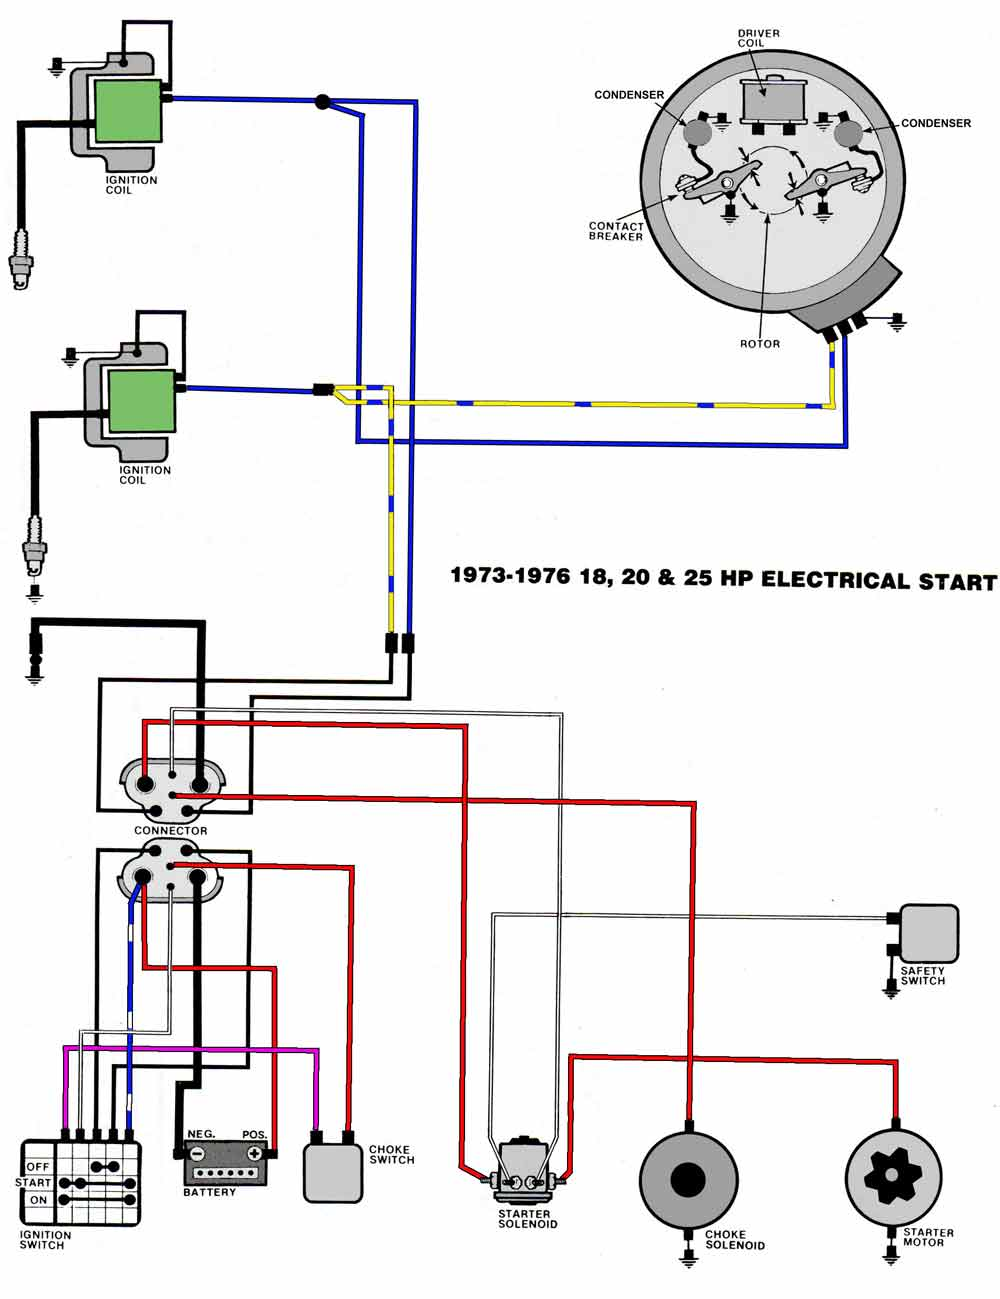 Yamaha 40 Hp 2 Stroke Outboard Wiring Diagram Free Picture 25 Mercury Starter Best Secret Ignition Switch 10 35